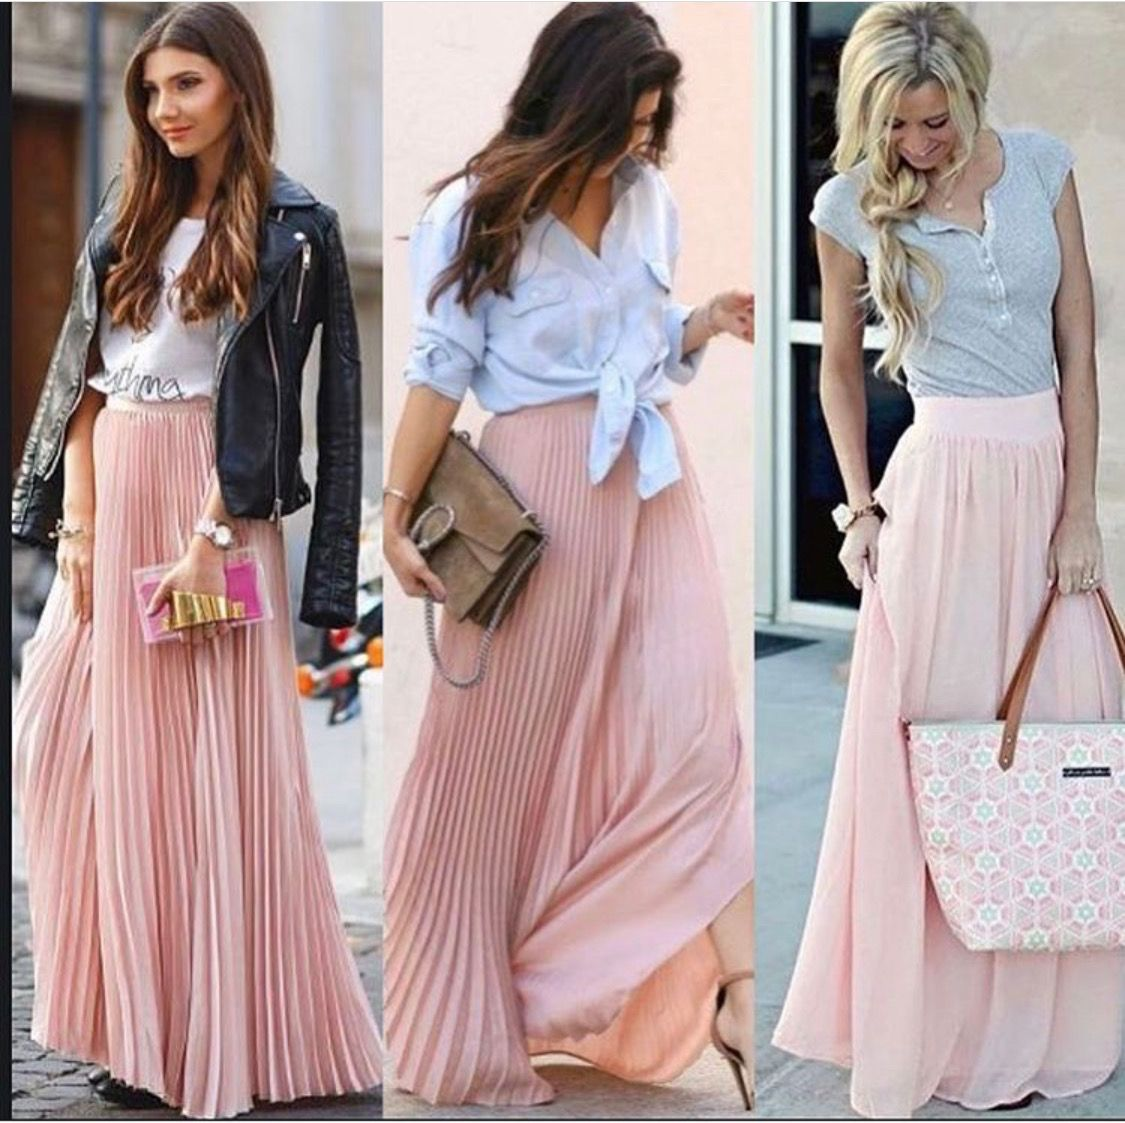 Pin by Jackie Wilson on Luv this look ️ Fashion, Street